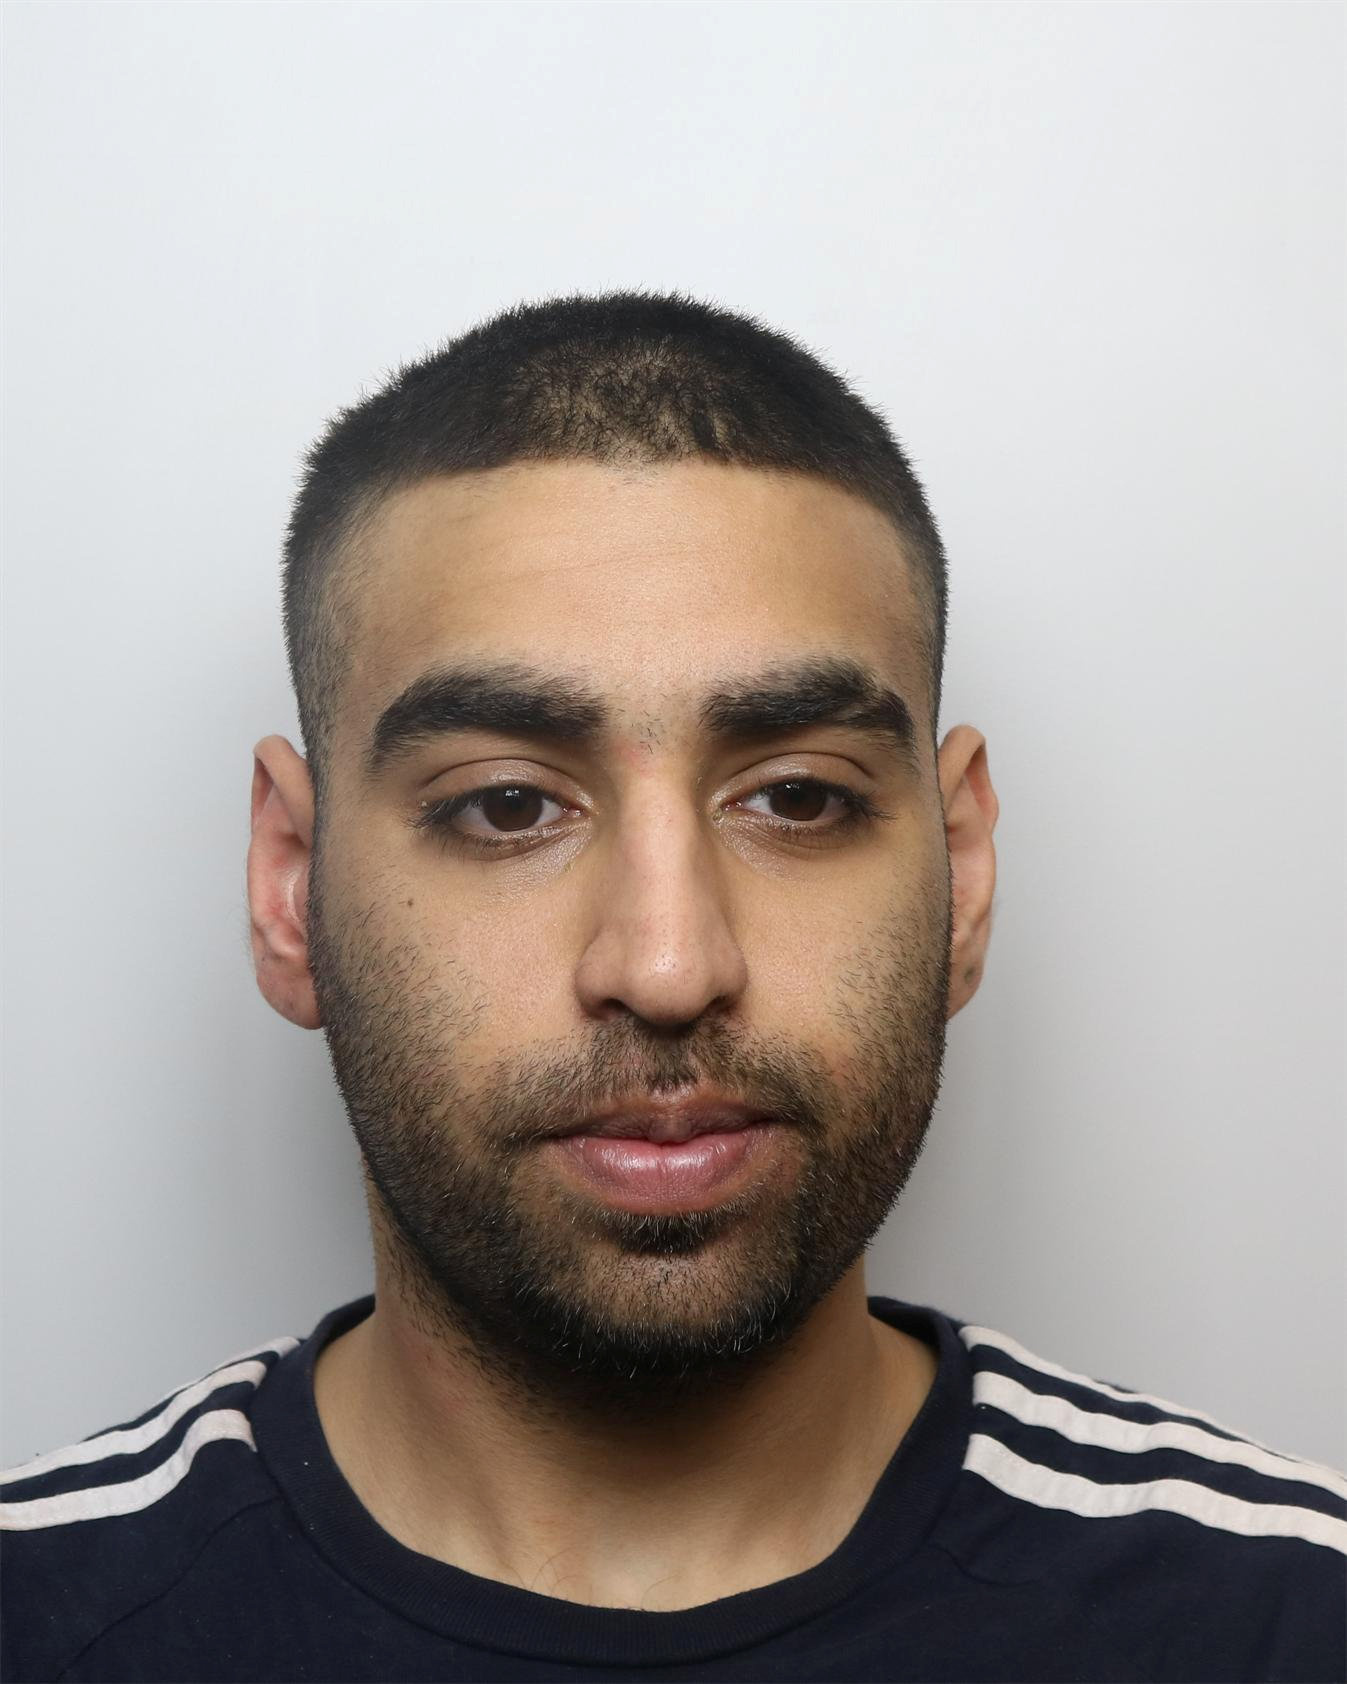 Drug dealer who was caught after advertising drugs on his t-shirt